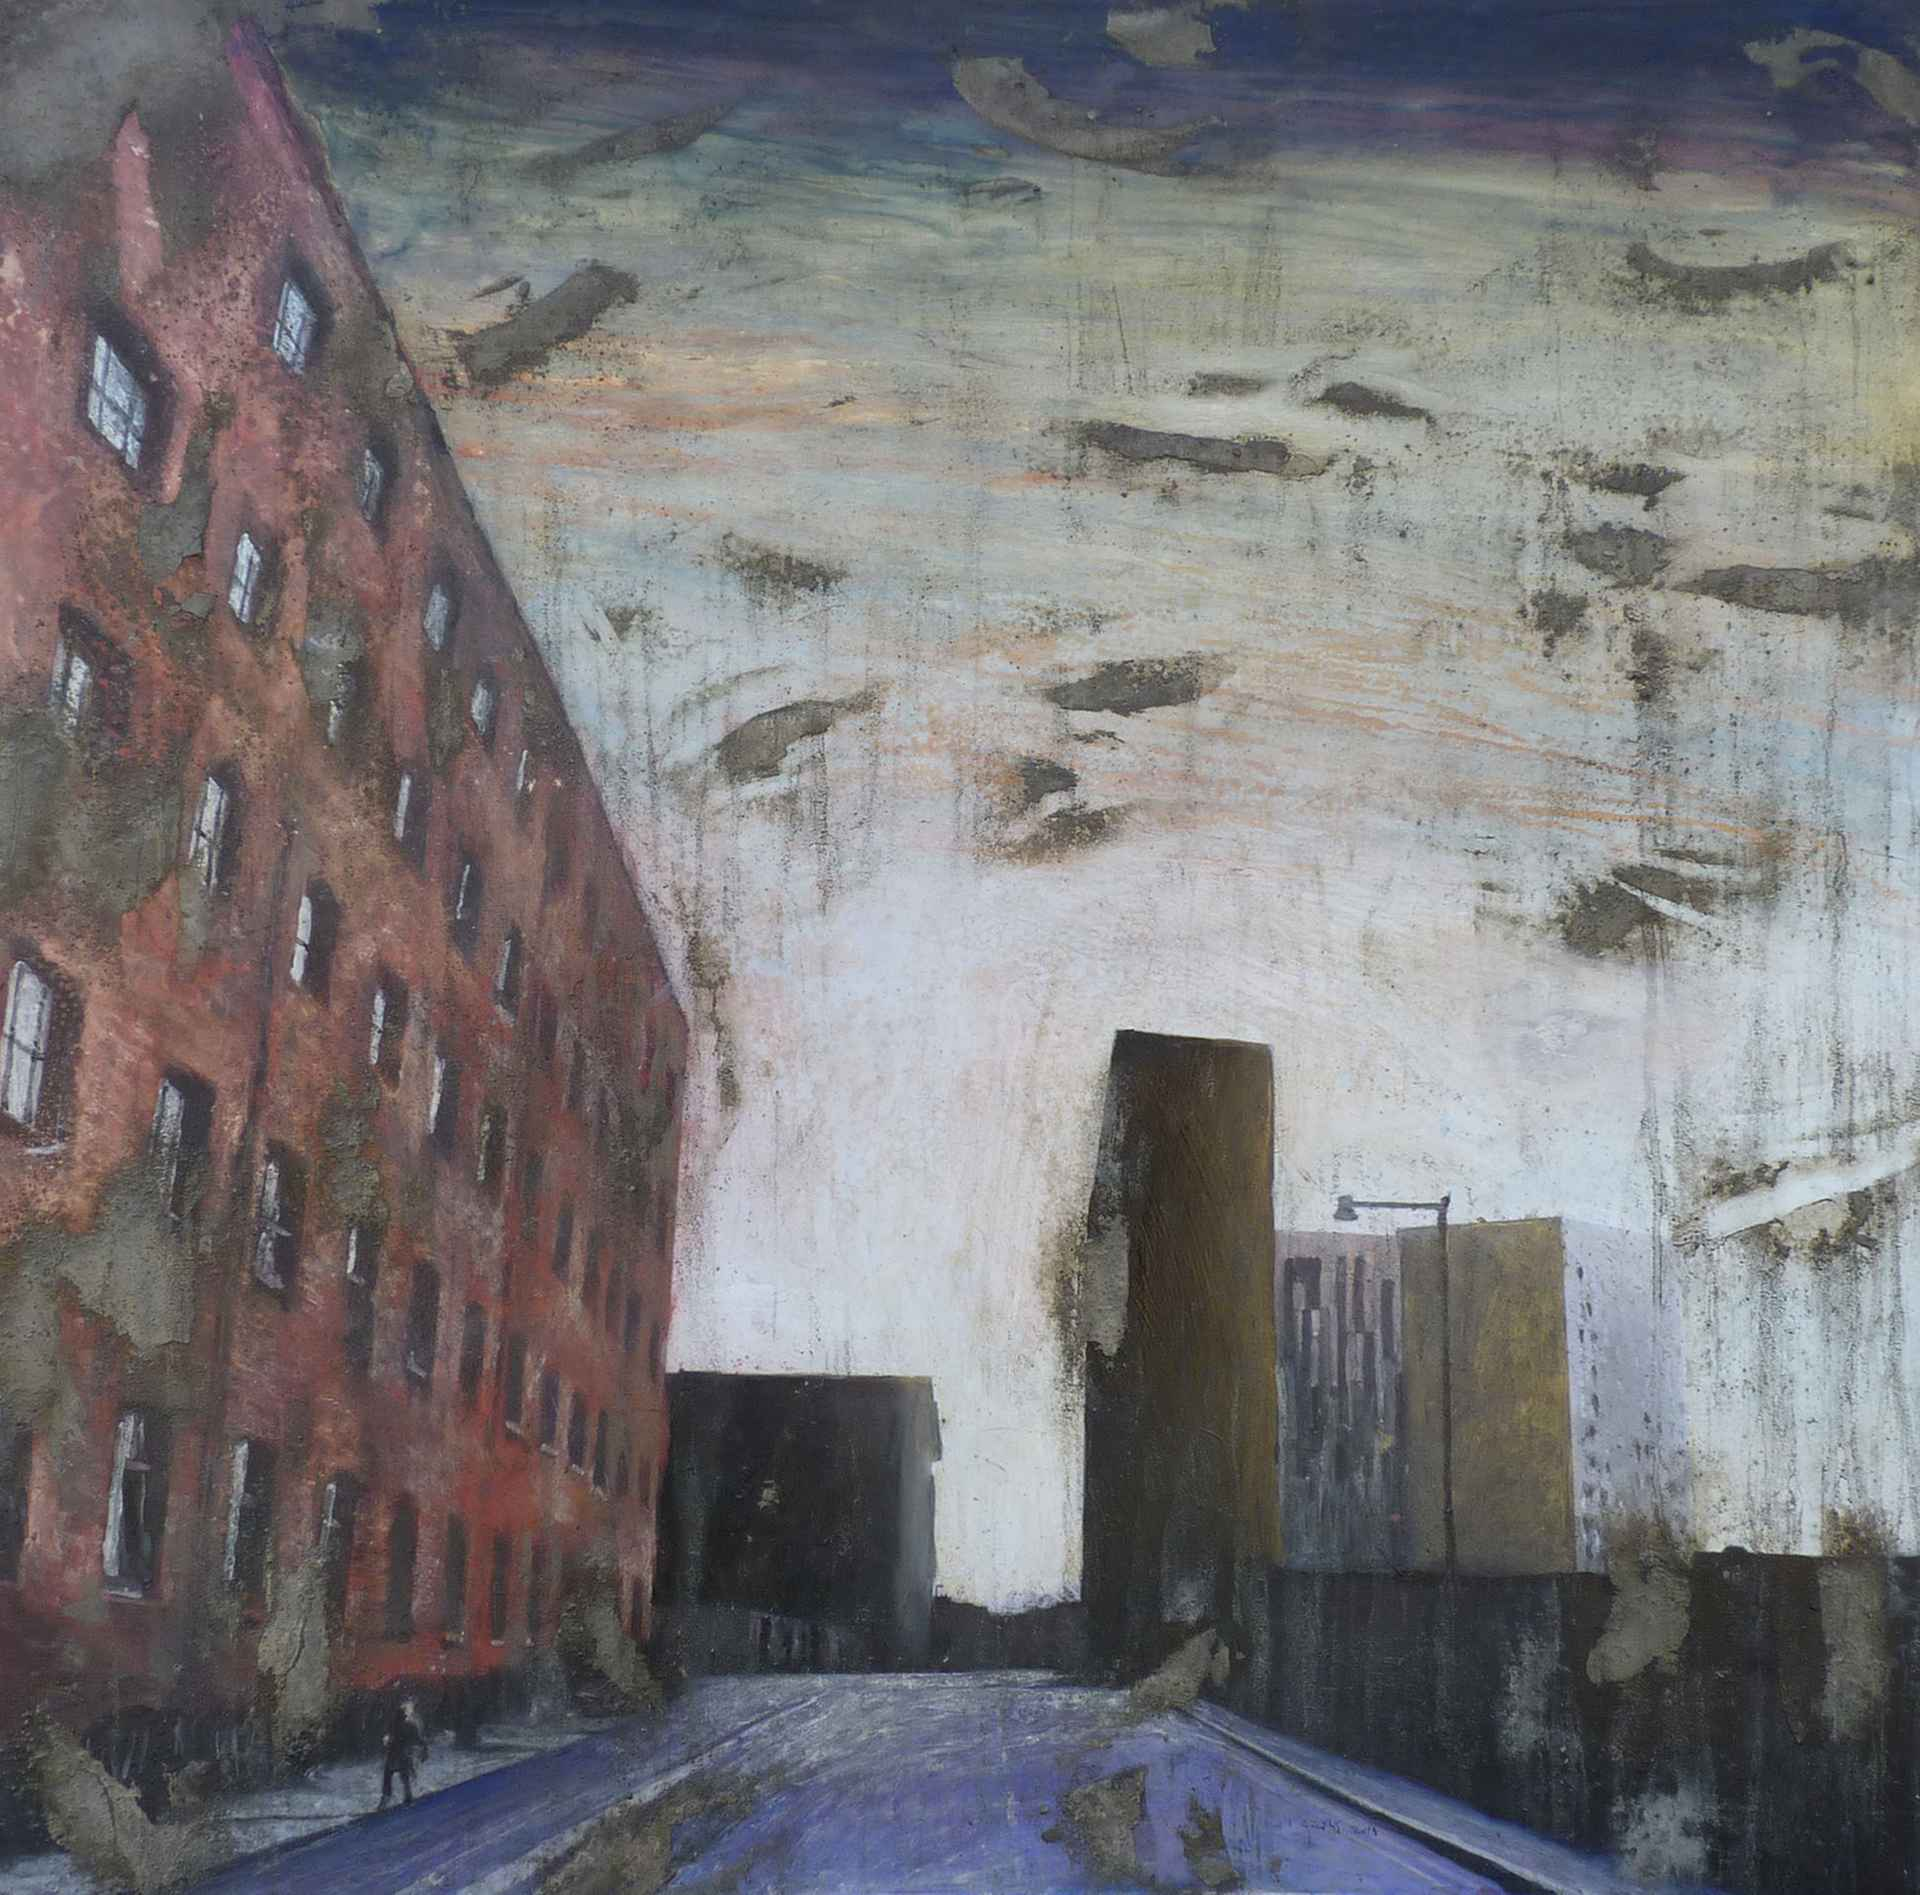 Coming Up to Hulme Street by Tim Garner